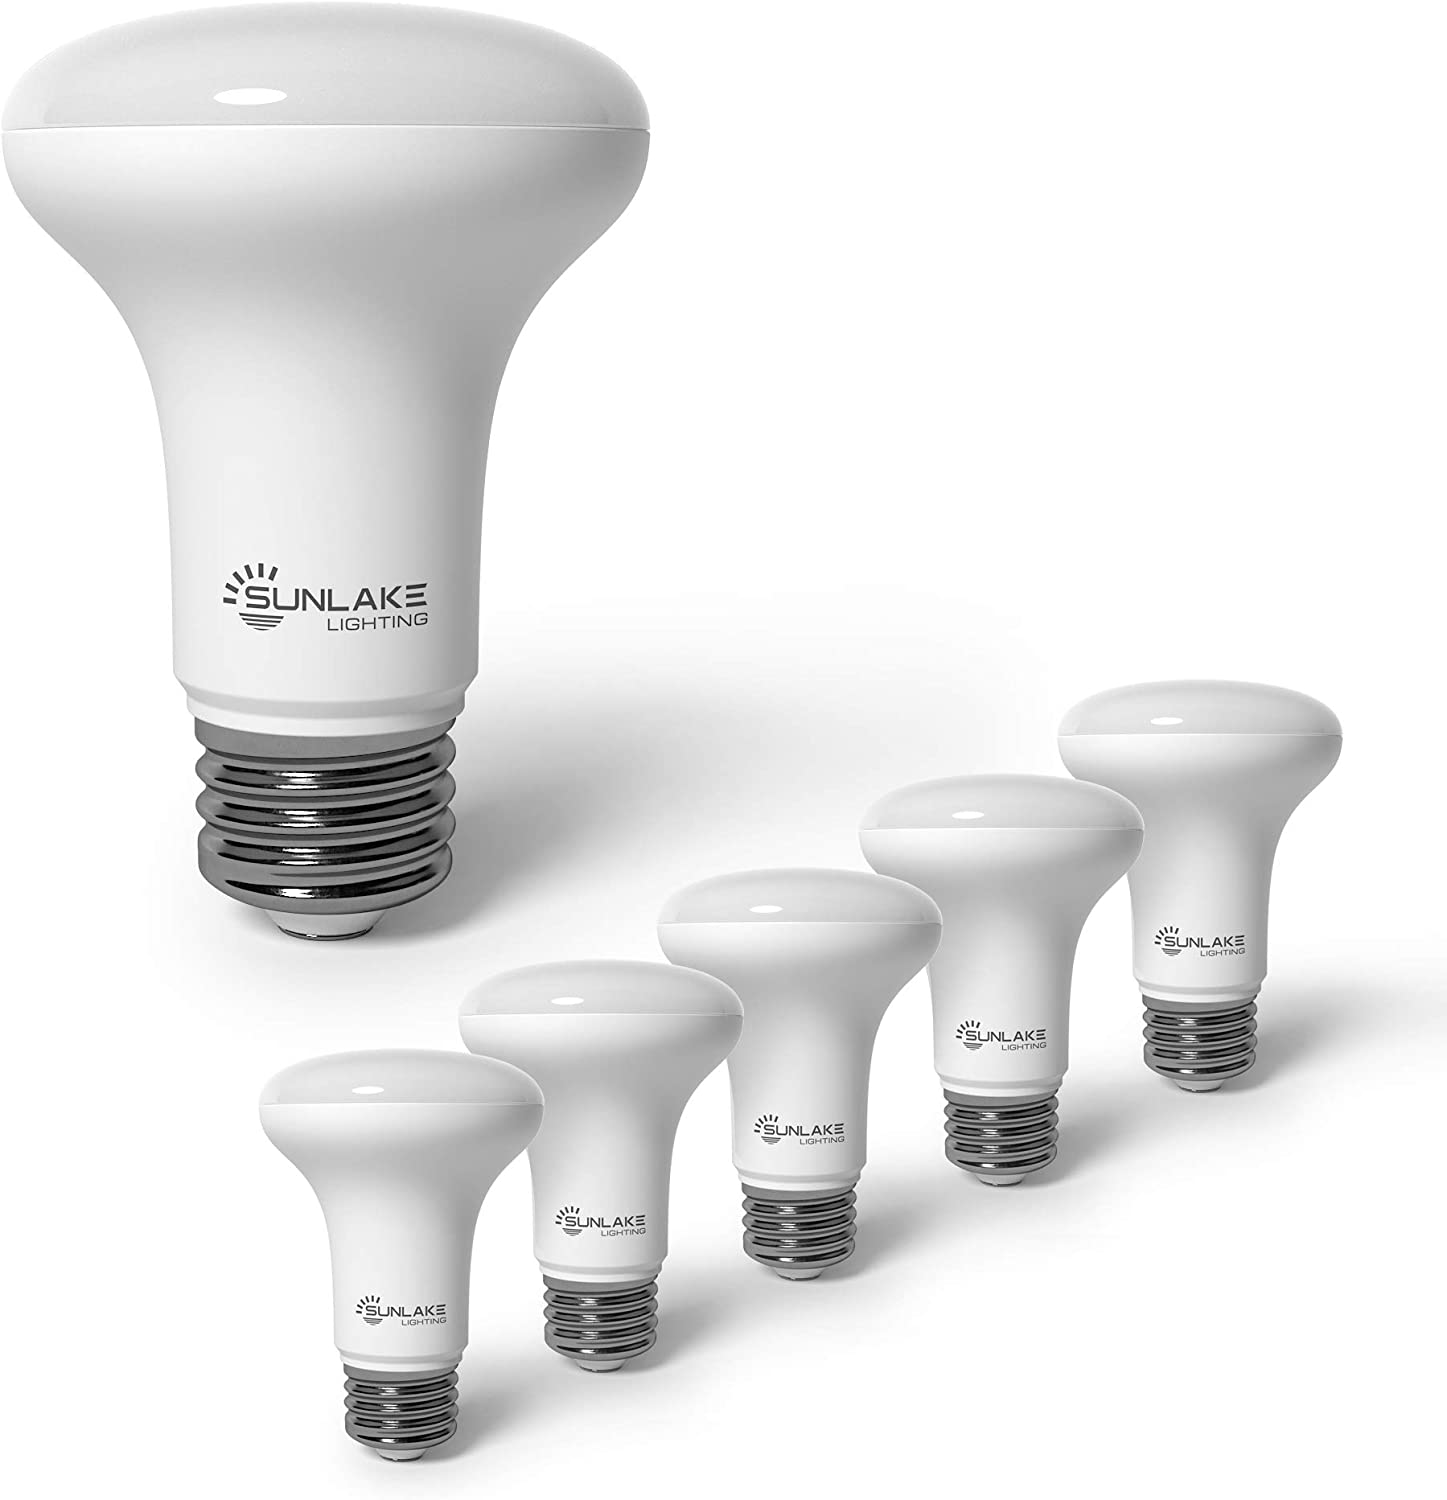 SunLake Lighting 6 Pack BR20 LED Bulb, 6W=50W, Dimmable, 3000K Warm White, E26 Base, Energy Efficient LED Flood Light Bulbs for Home, Ceiling Fan or Office Space - UL & Energy Star